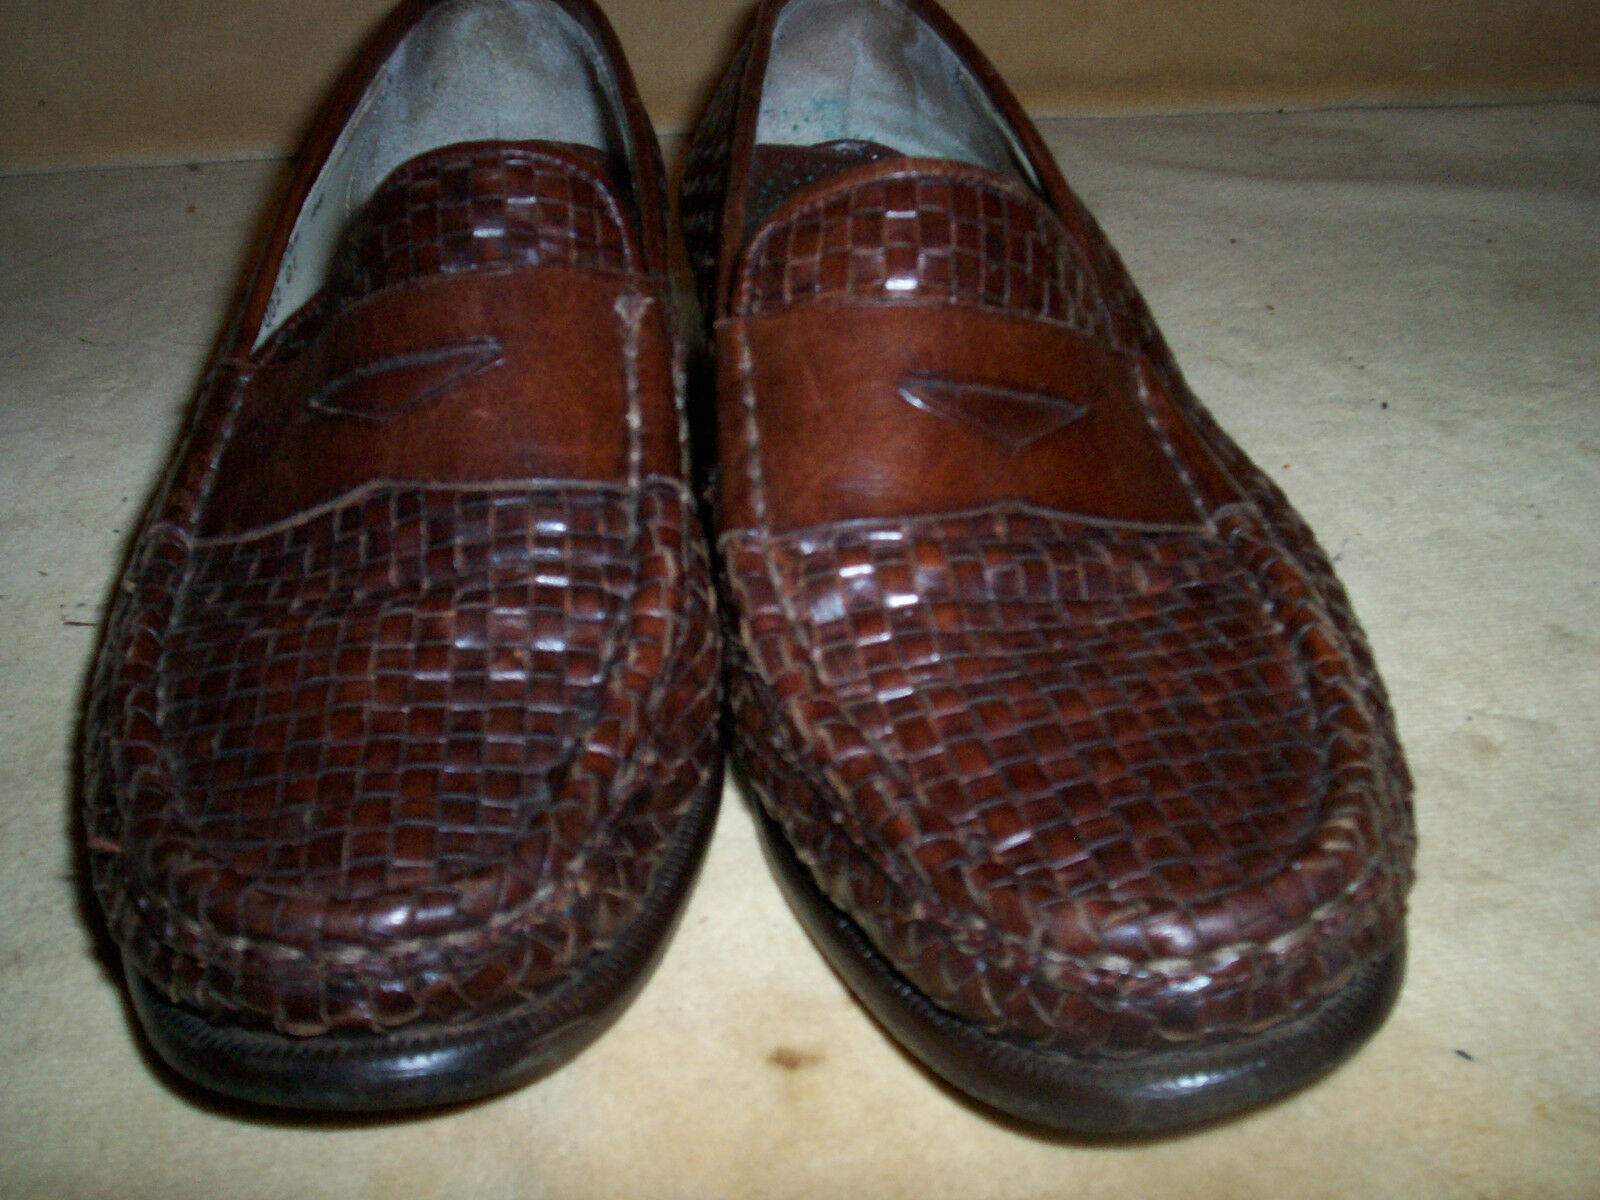 Cole Haan 10.5M 10.5M Haan Dennehy Woven Leather Penny Loafer  395 Retail Chestnut braun b4bd99